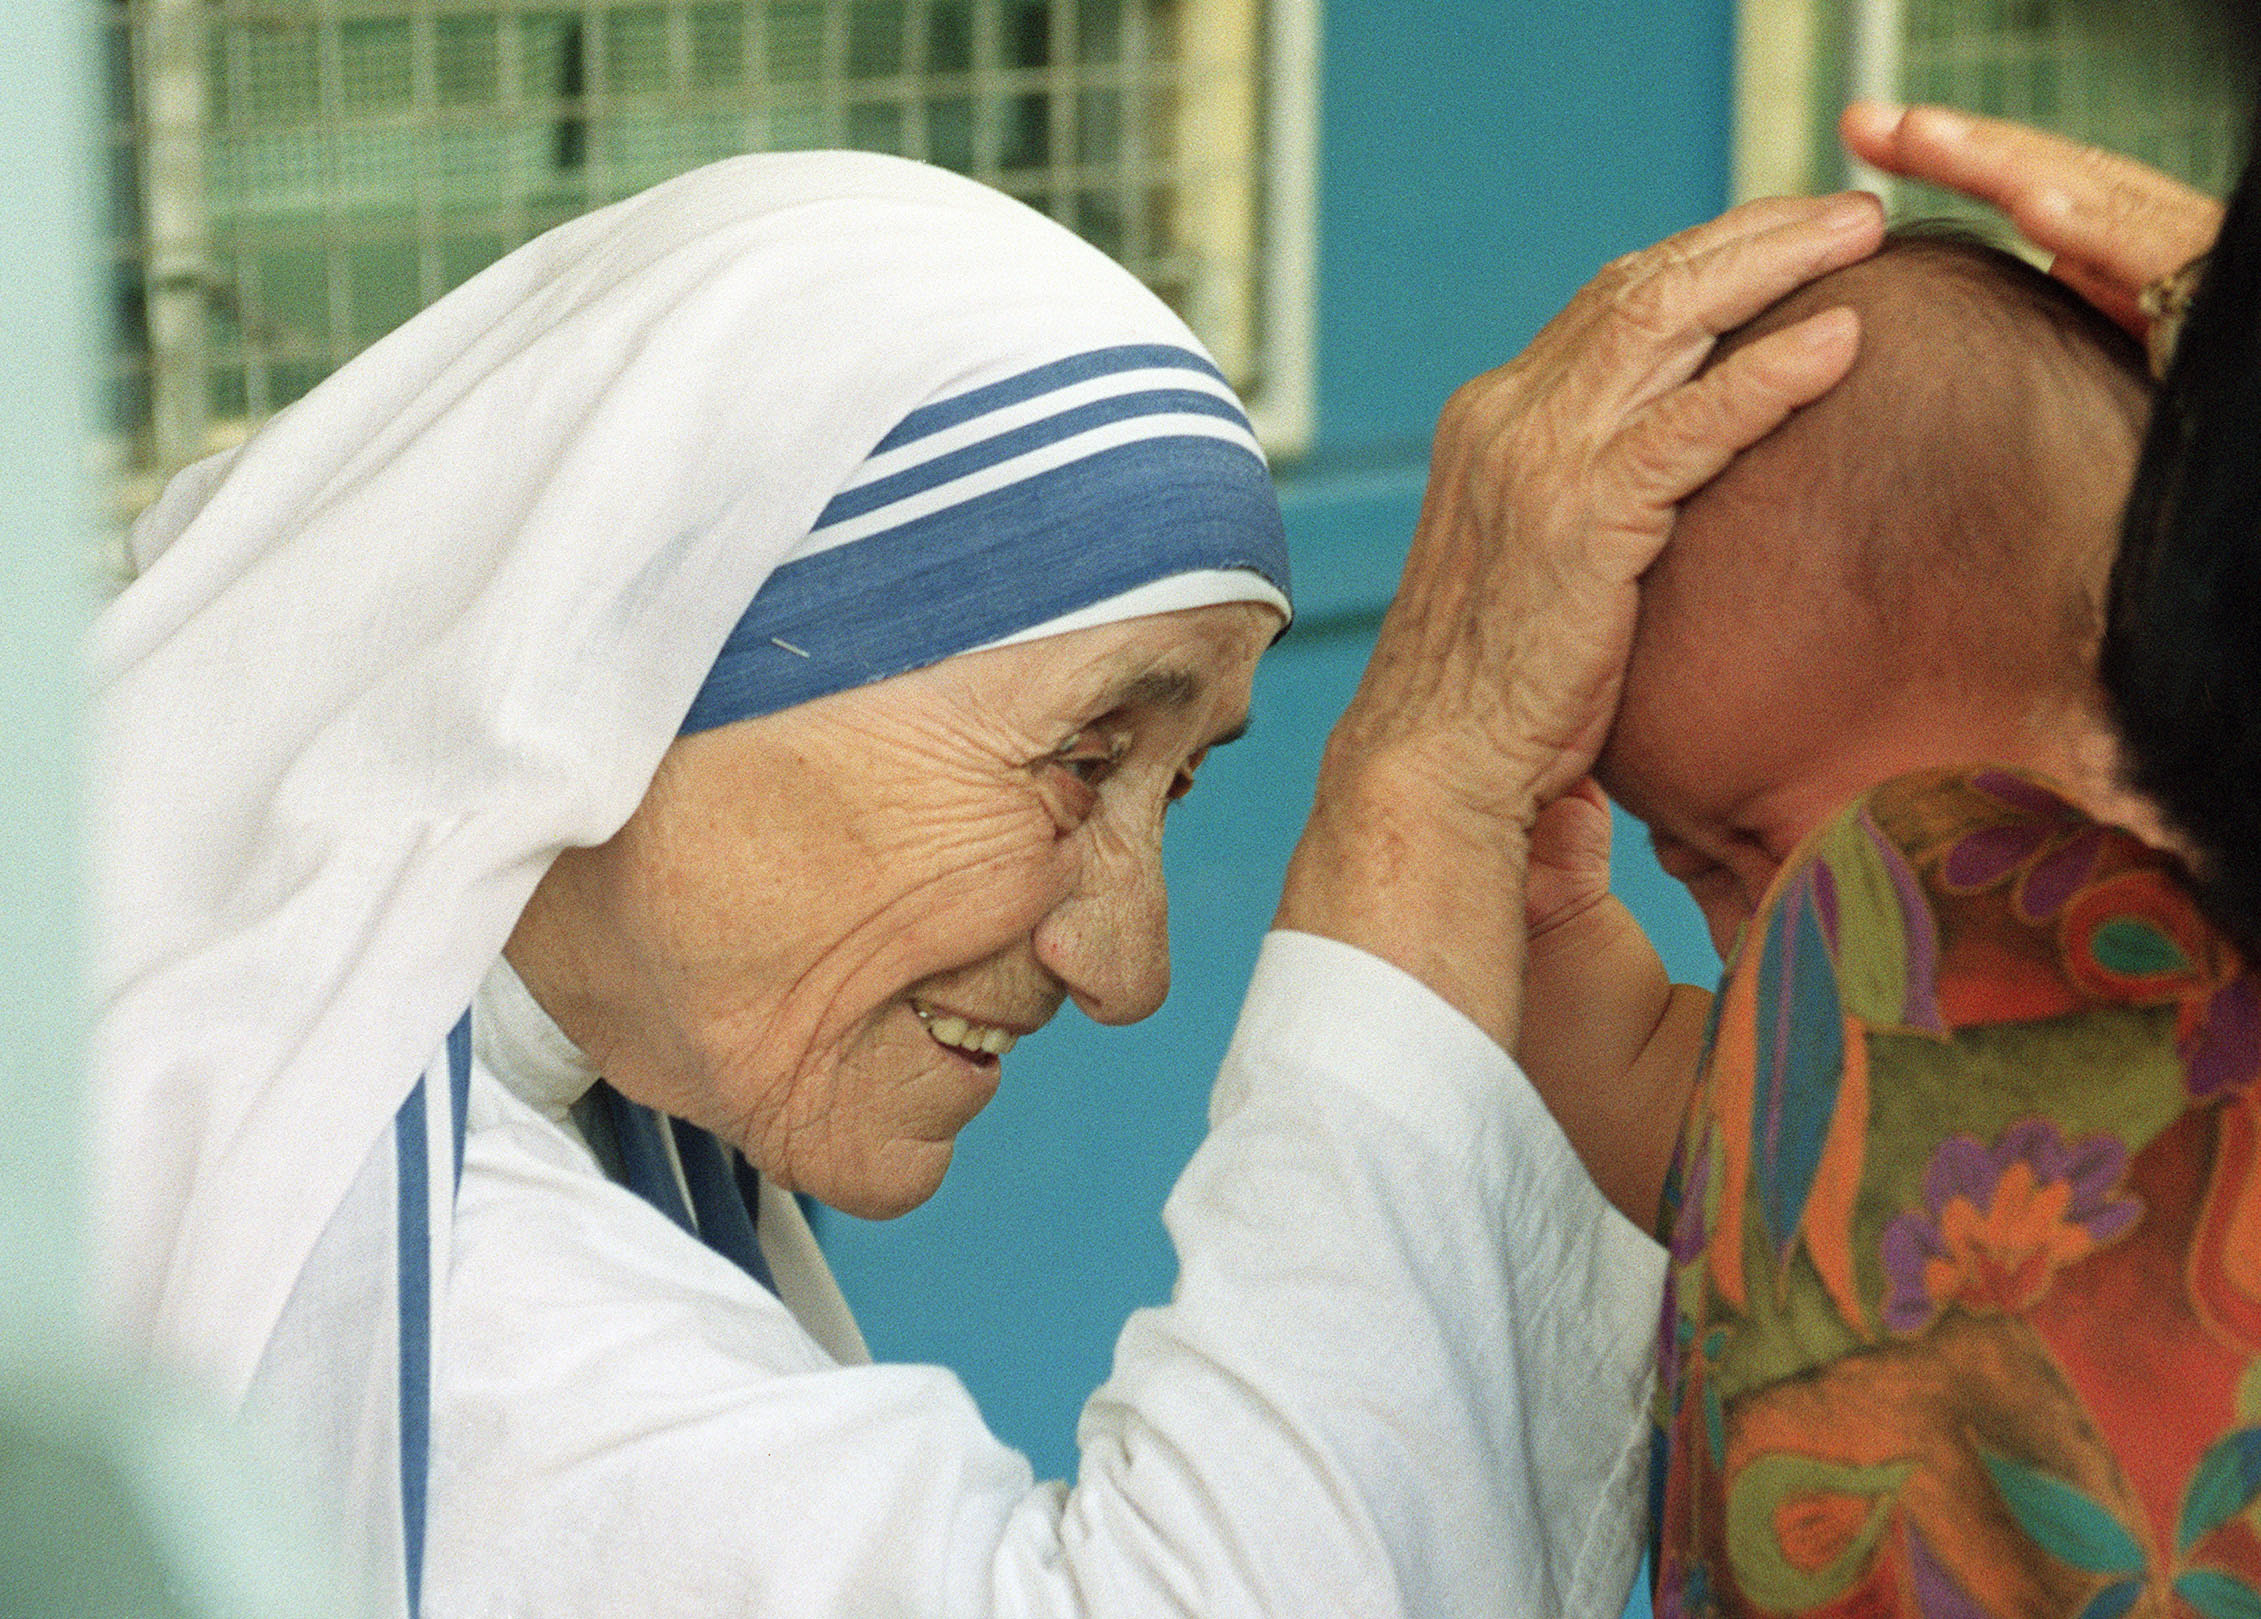 At long last, Mother Teresa is about to become a Saint!